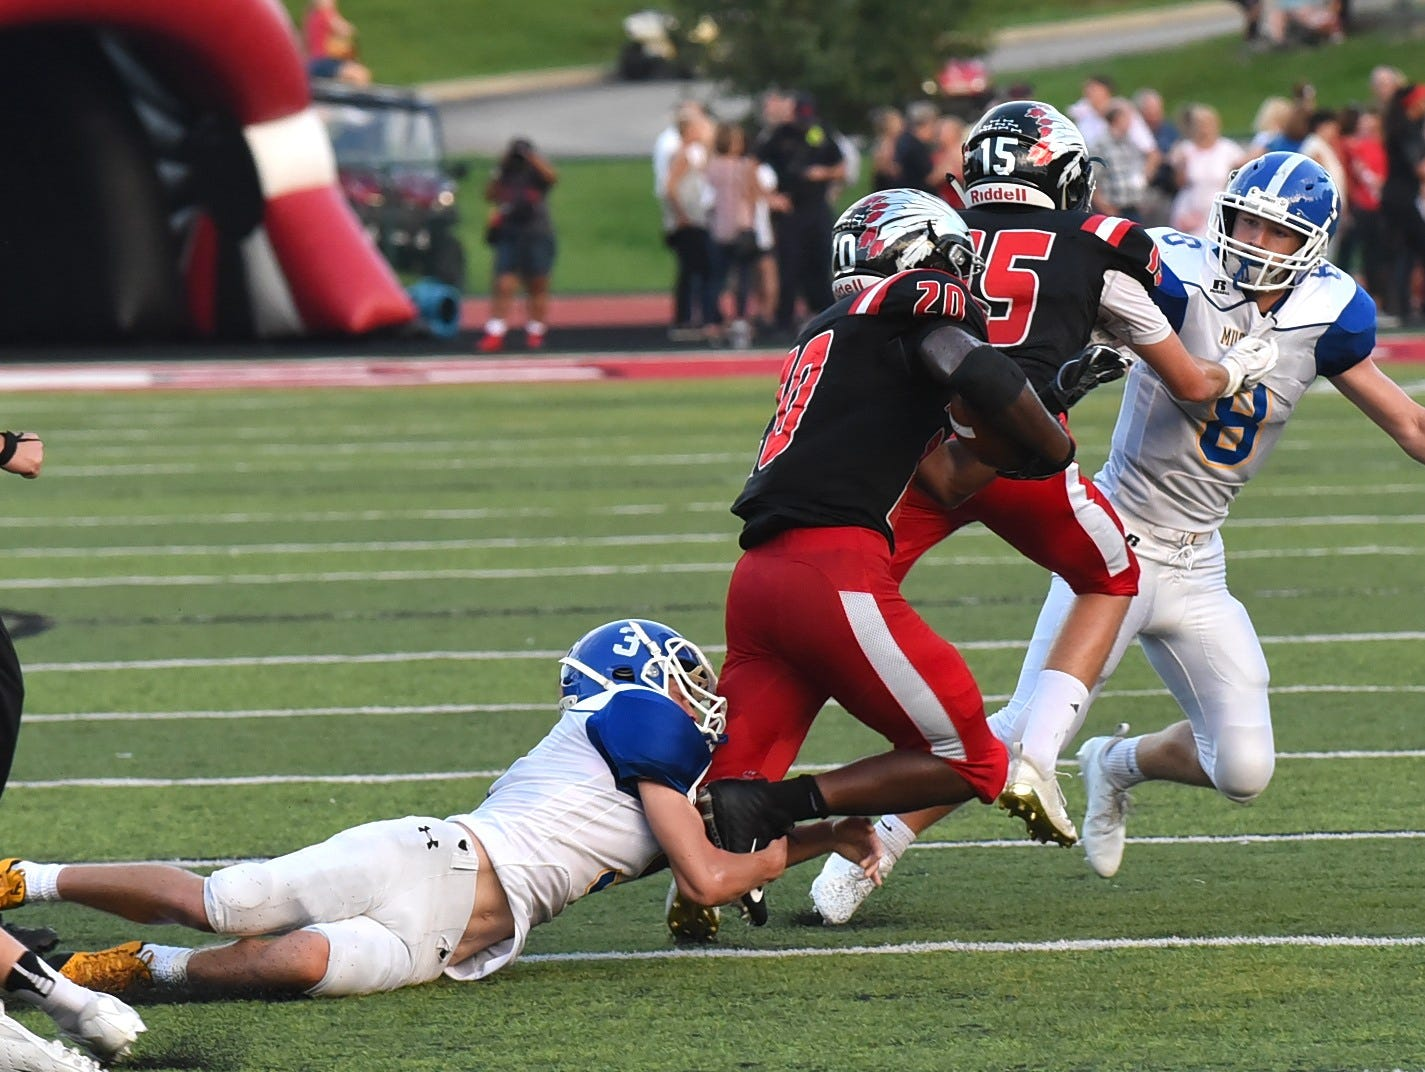 Ryan Hamm (3) of Madeira makes a shoestring tackle of John Mark Williams of Indian Hill saving a long gainer, Sept. 14, 2018.